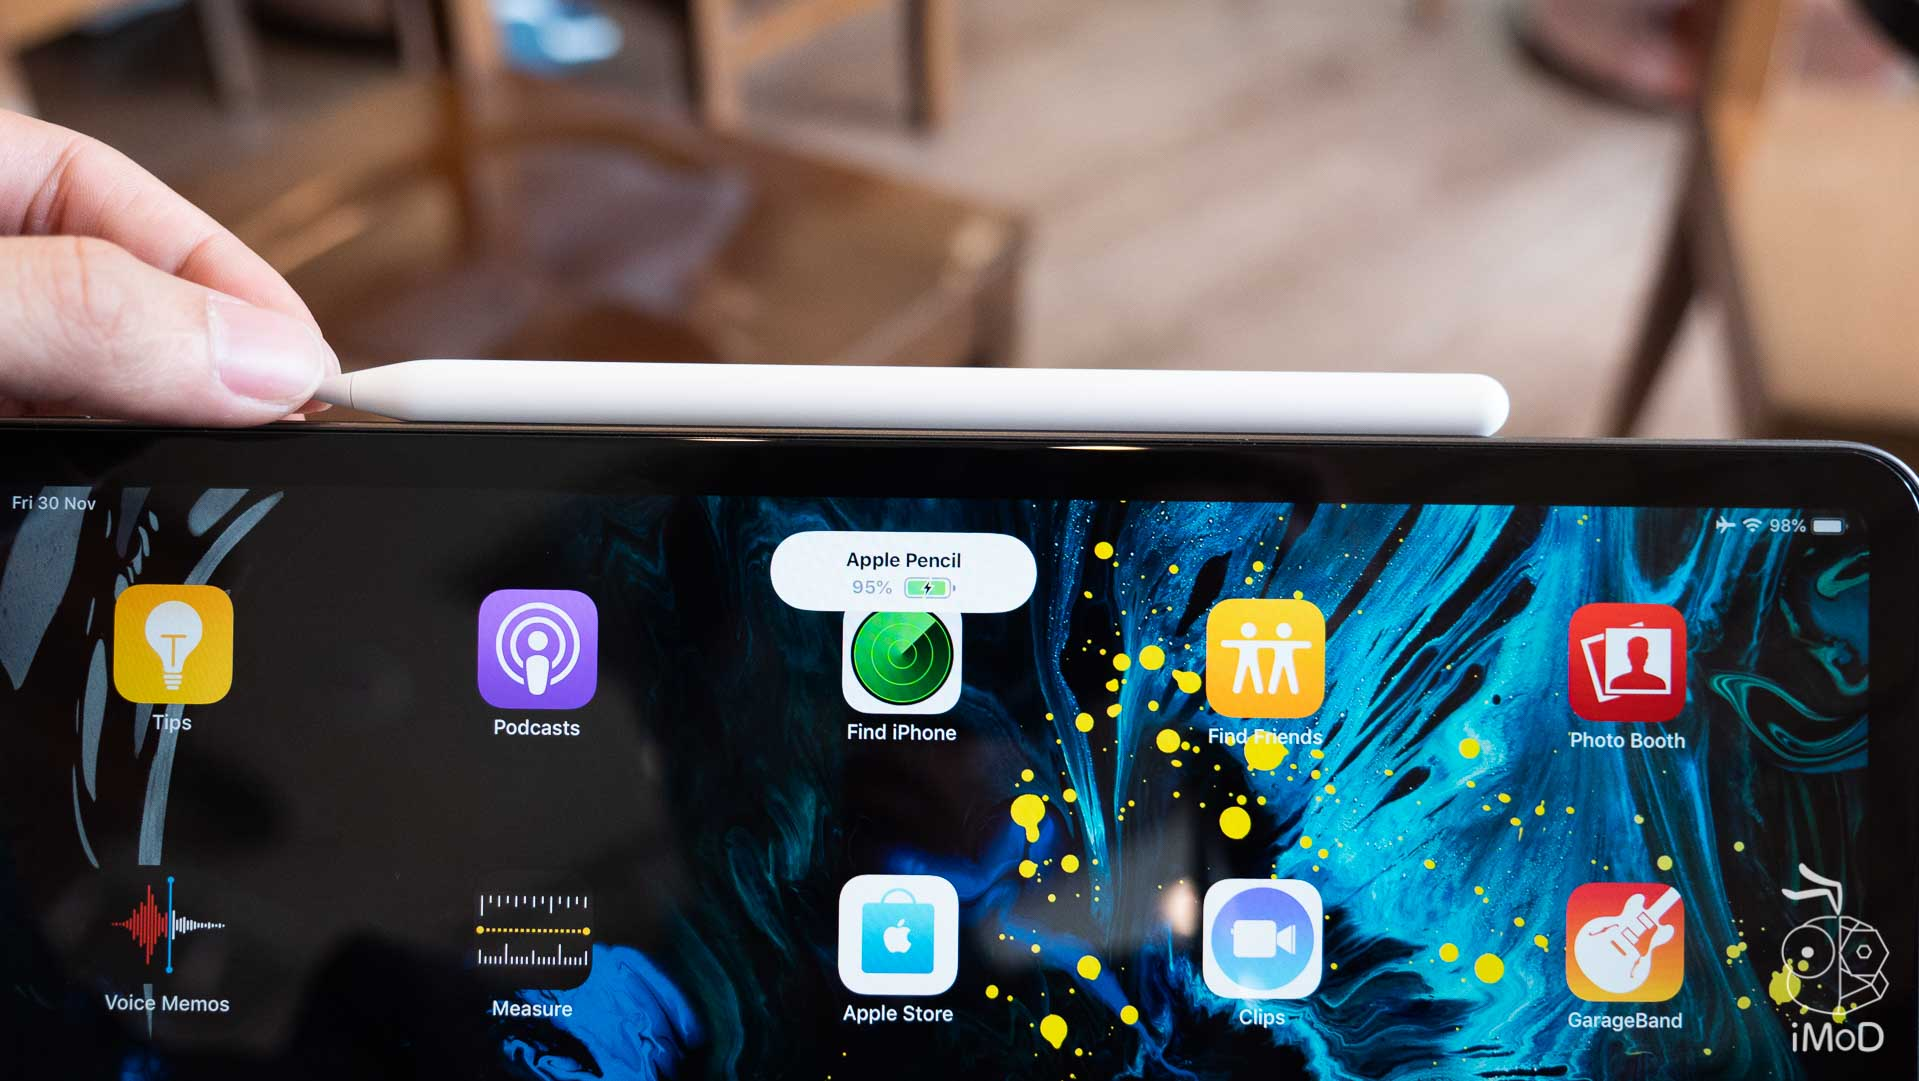 Ipad Pro 2018 With Apple Pencil 2 Review 1211636